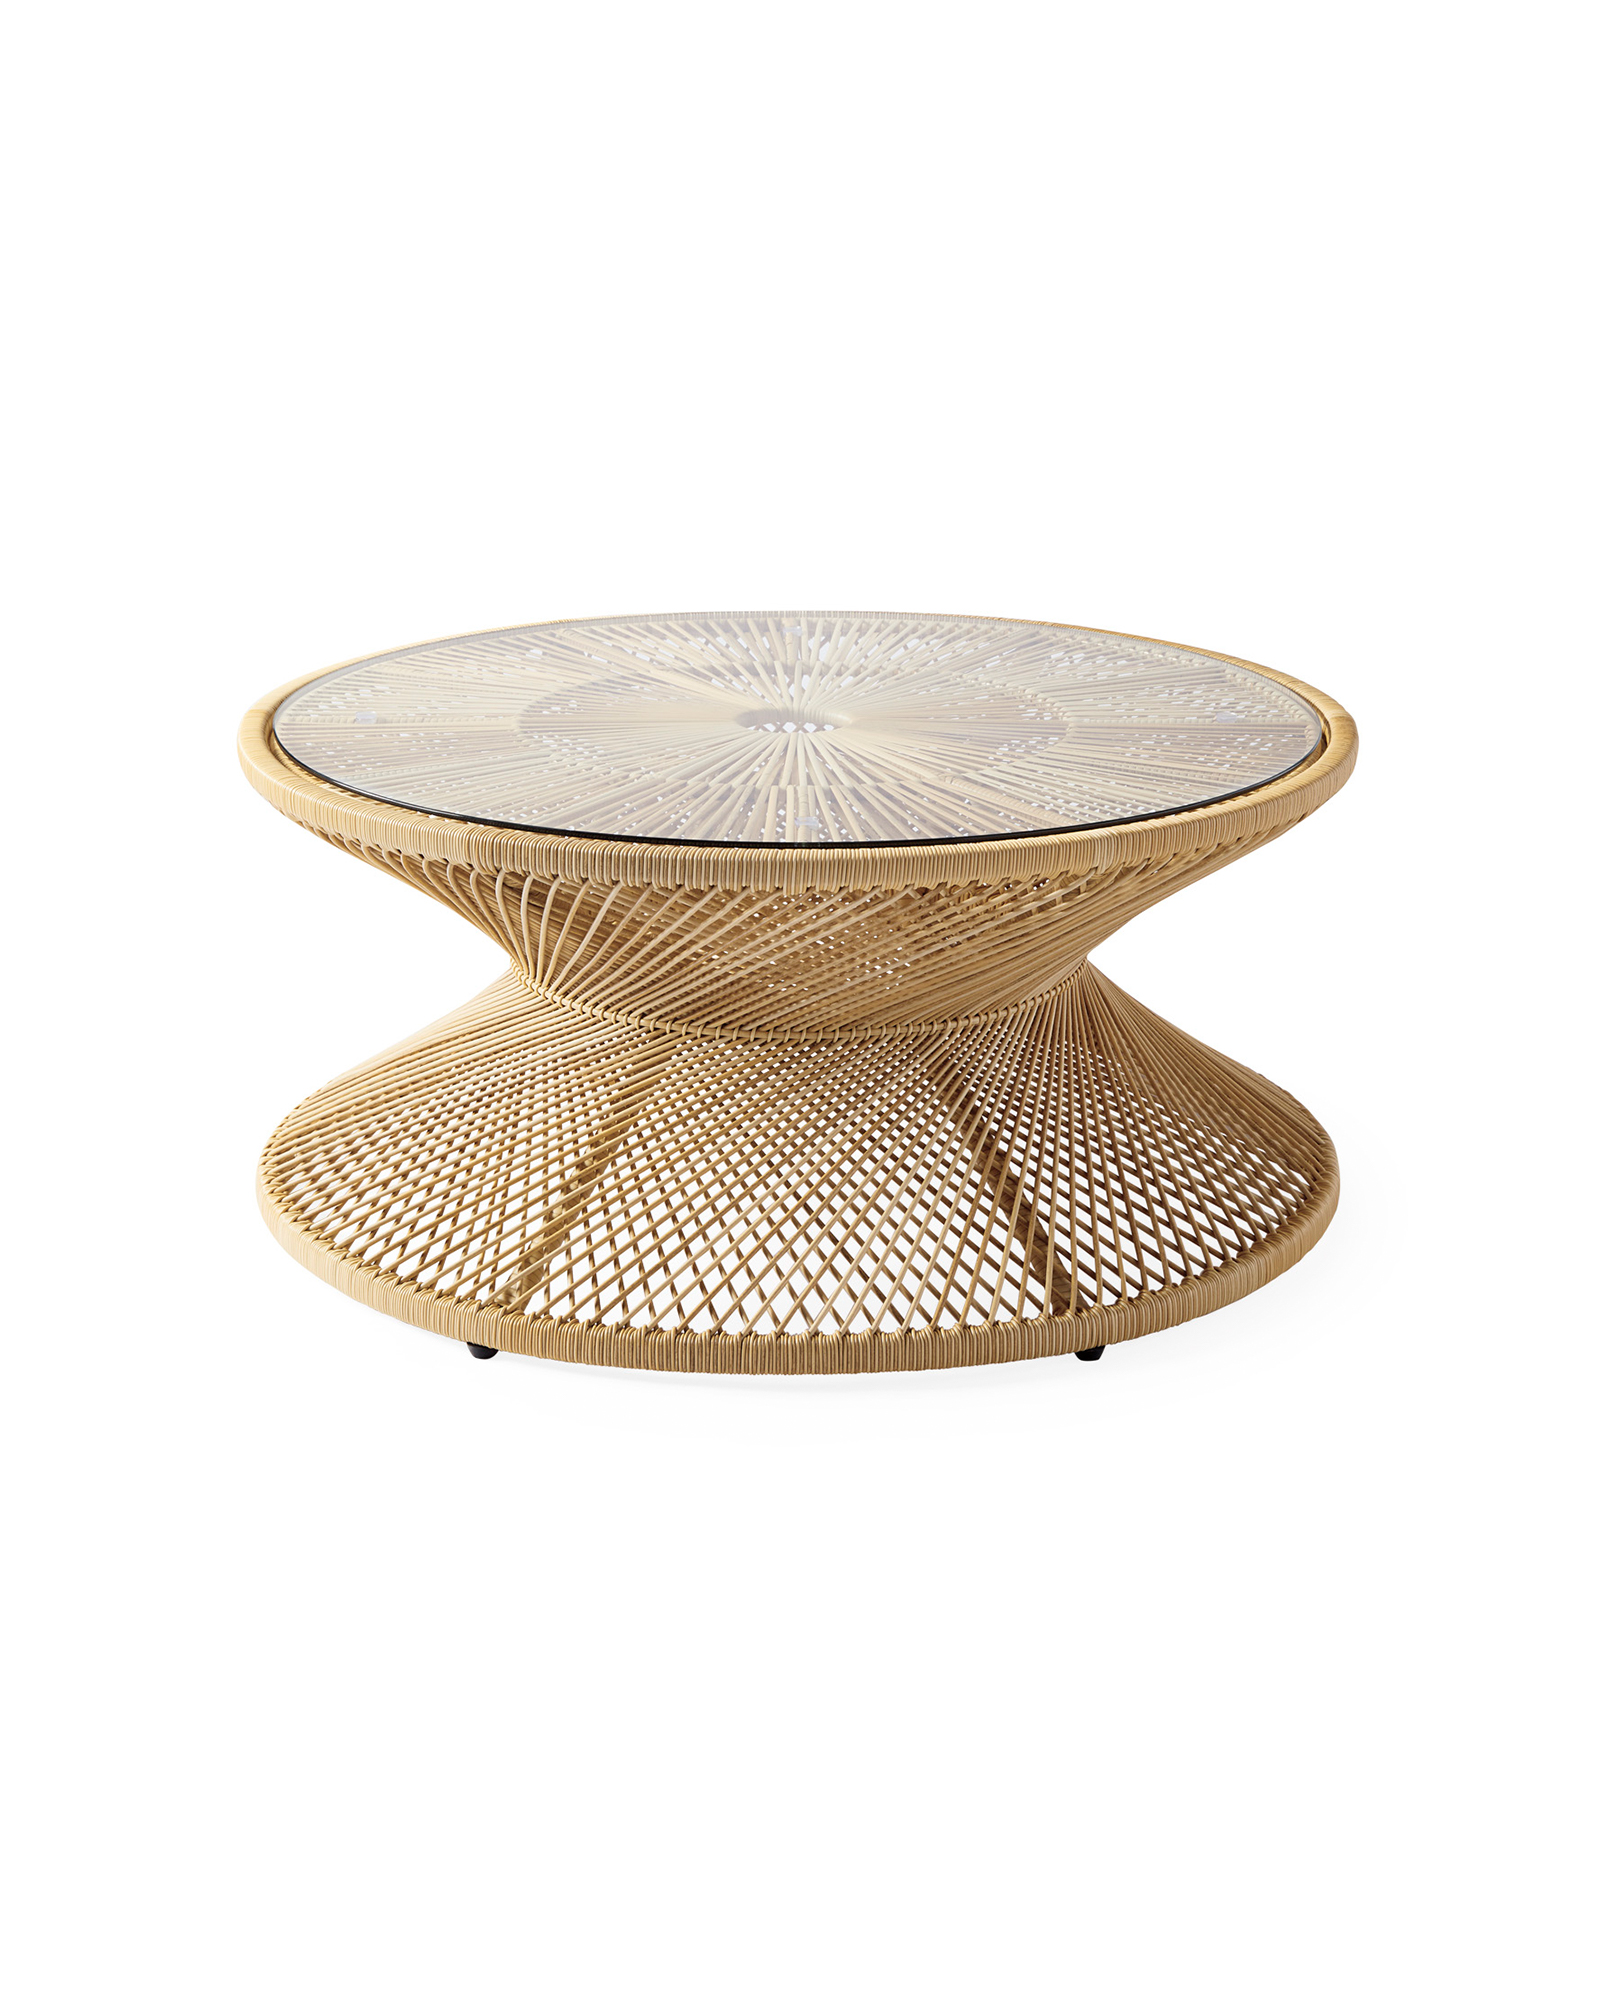 Blithedale Coffee Table,